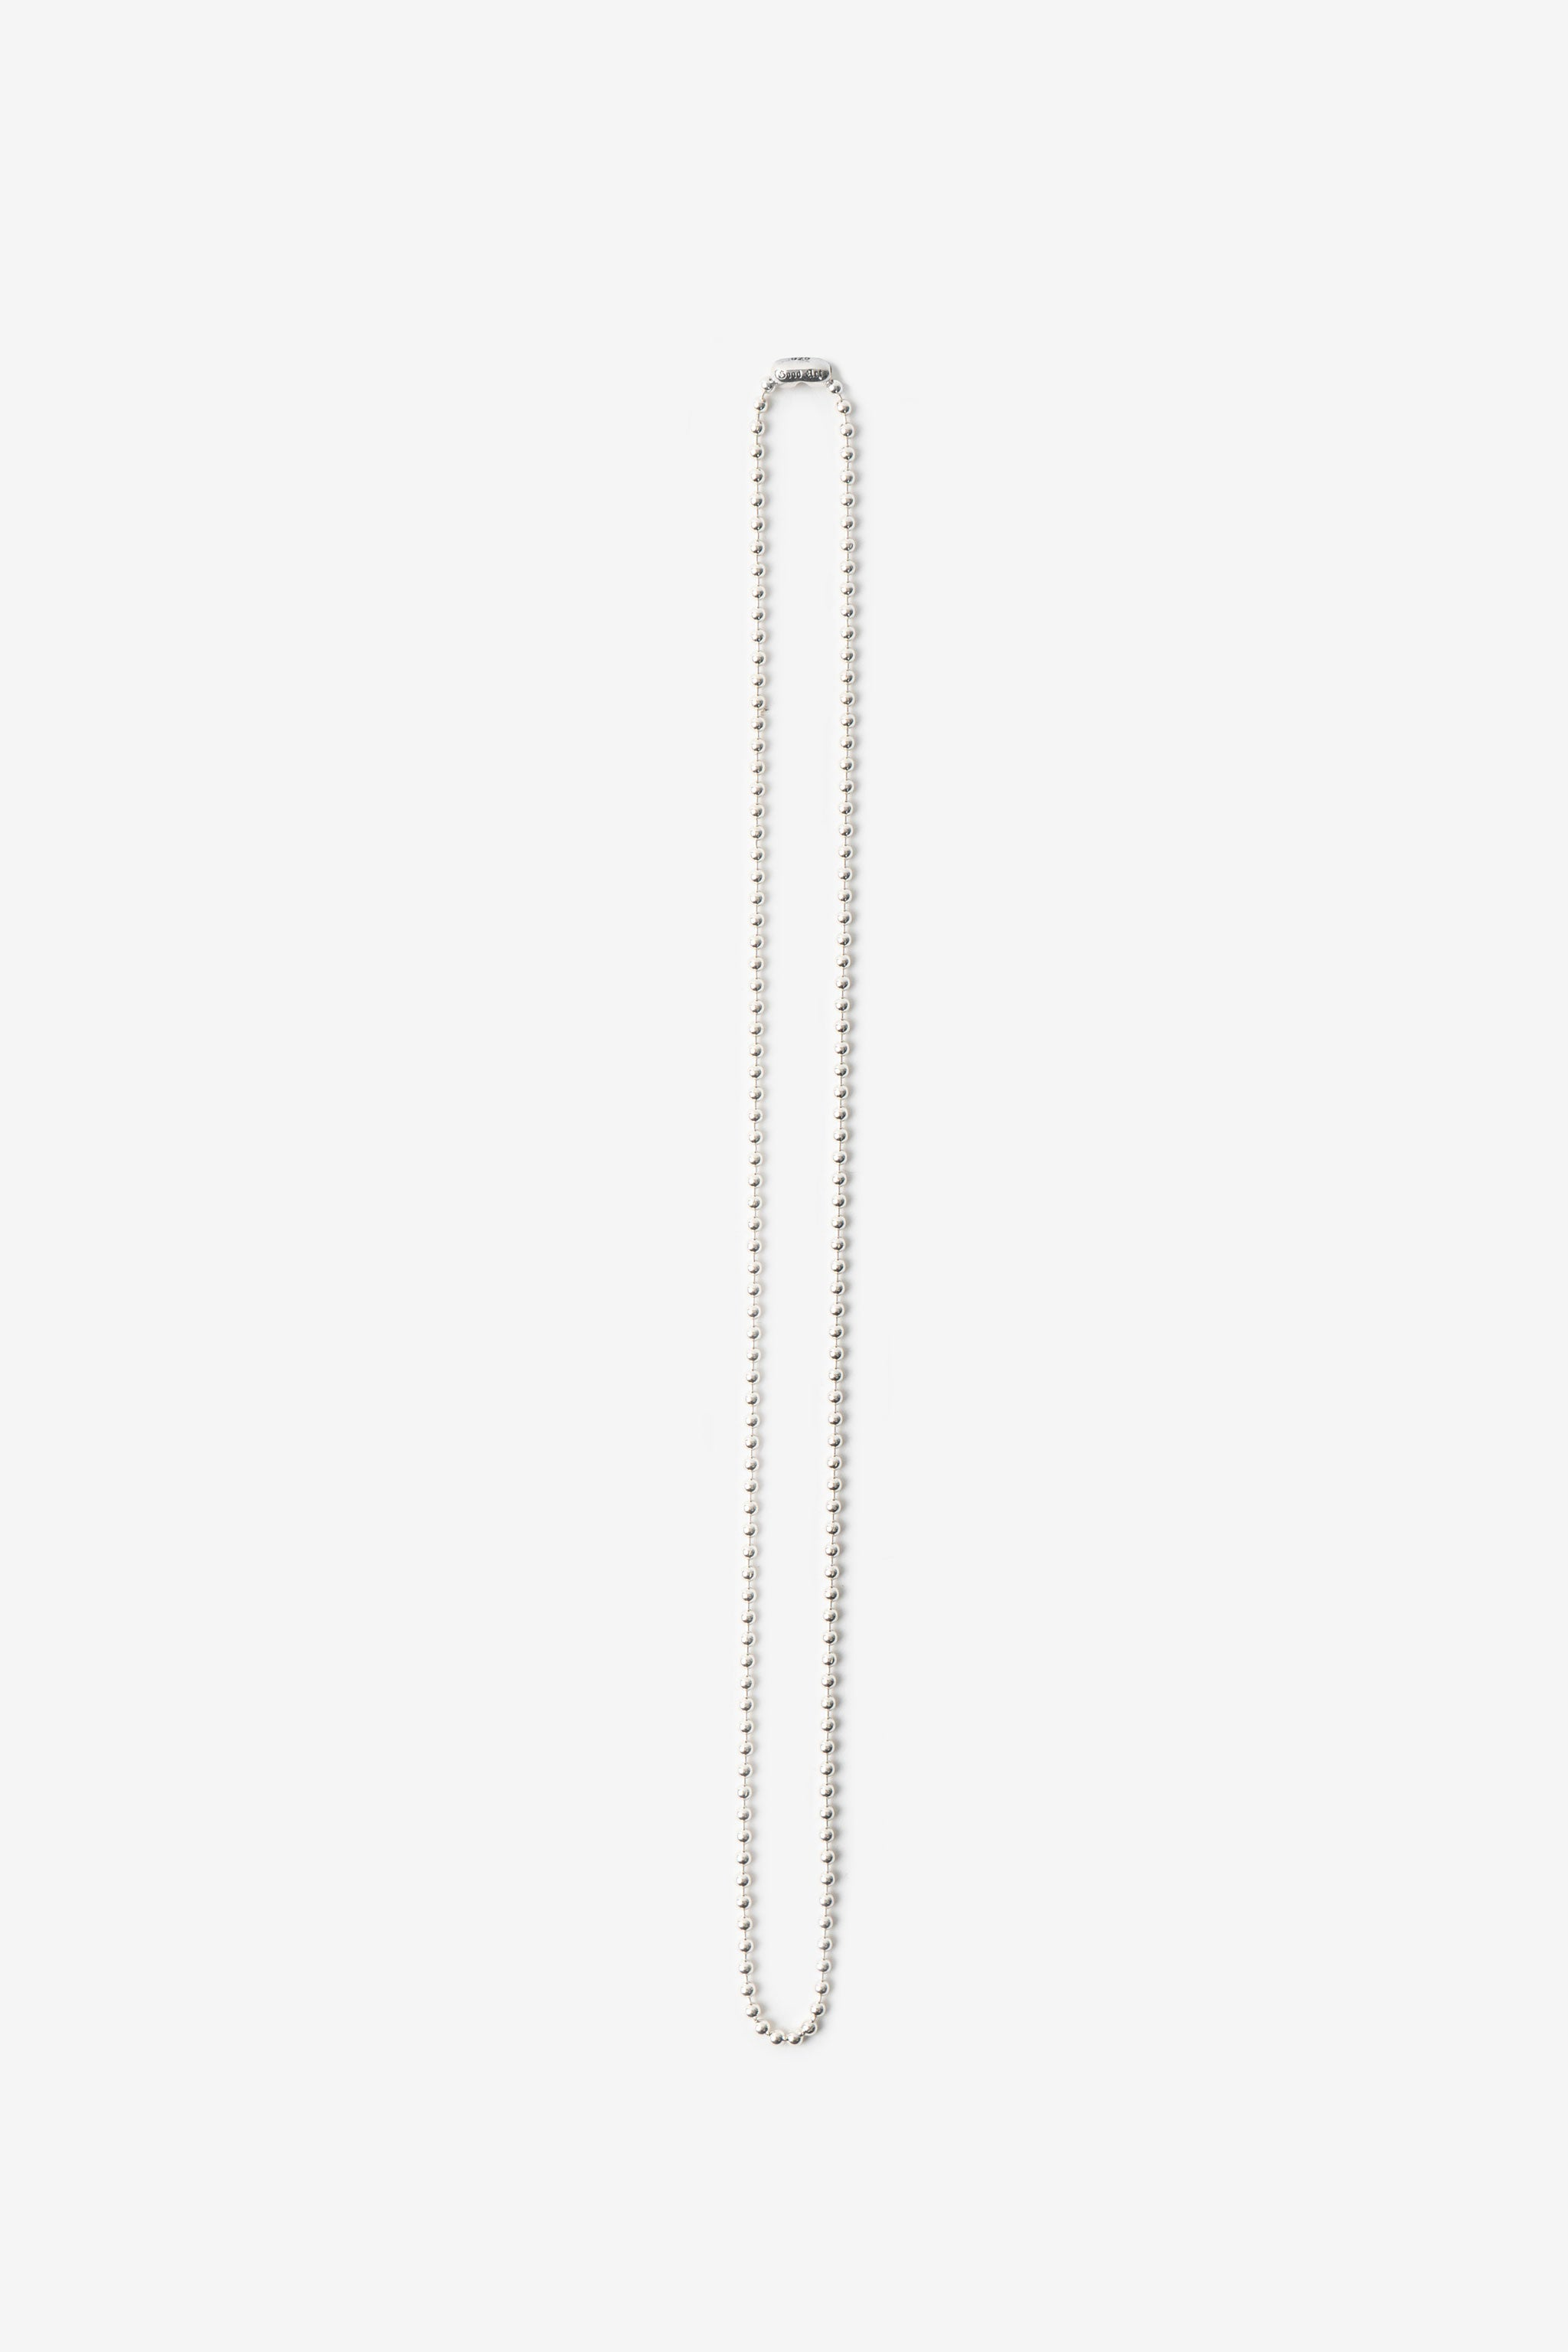 Good Art Hlywd for Goodfight MINI Ball Chain Necklace - 24""